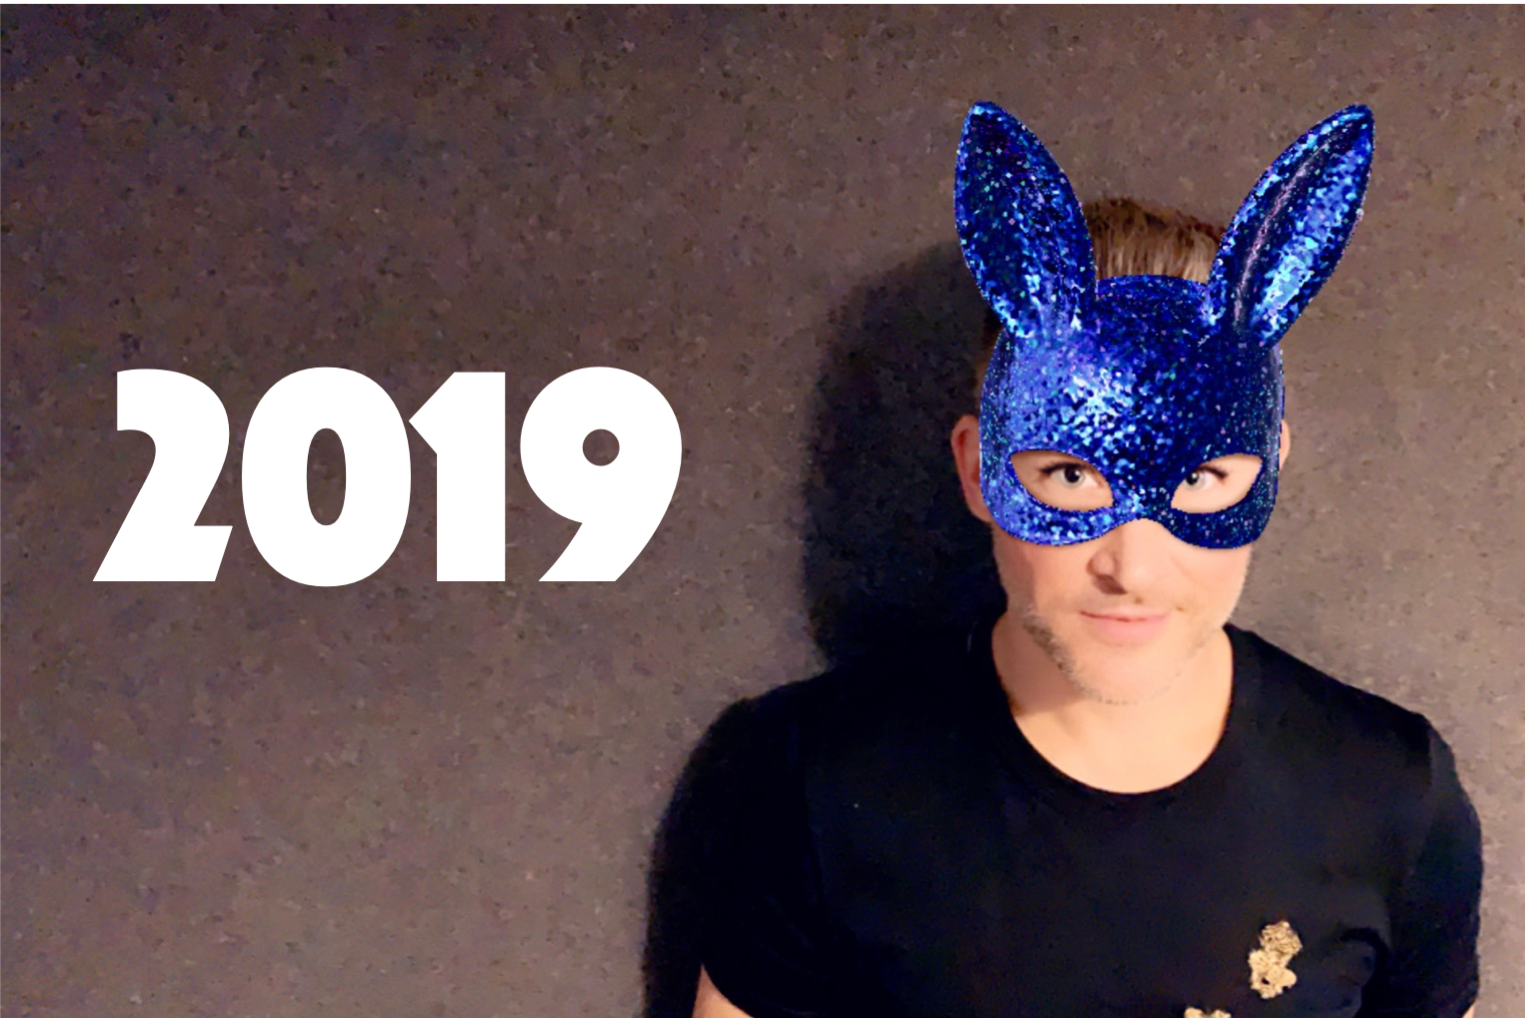 87a260d6a2d2 19 for '19: Augmented Reality Trends & How They May Play Out This Year